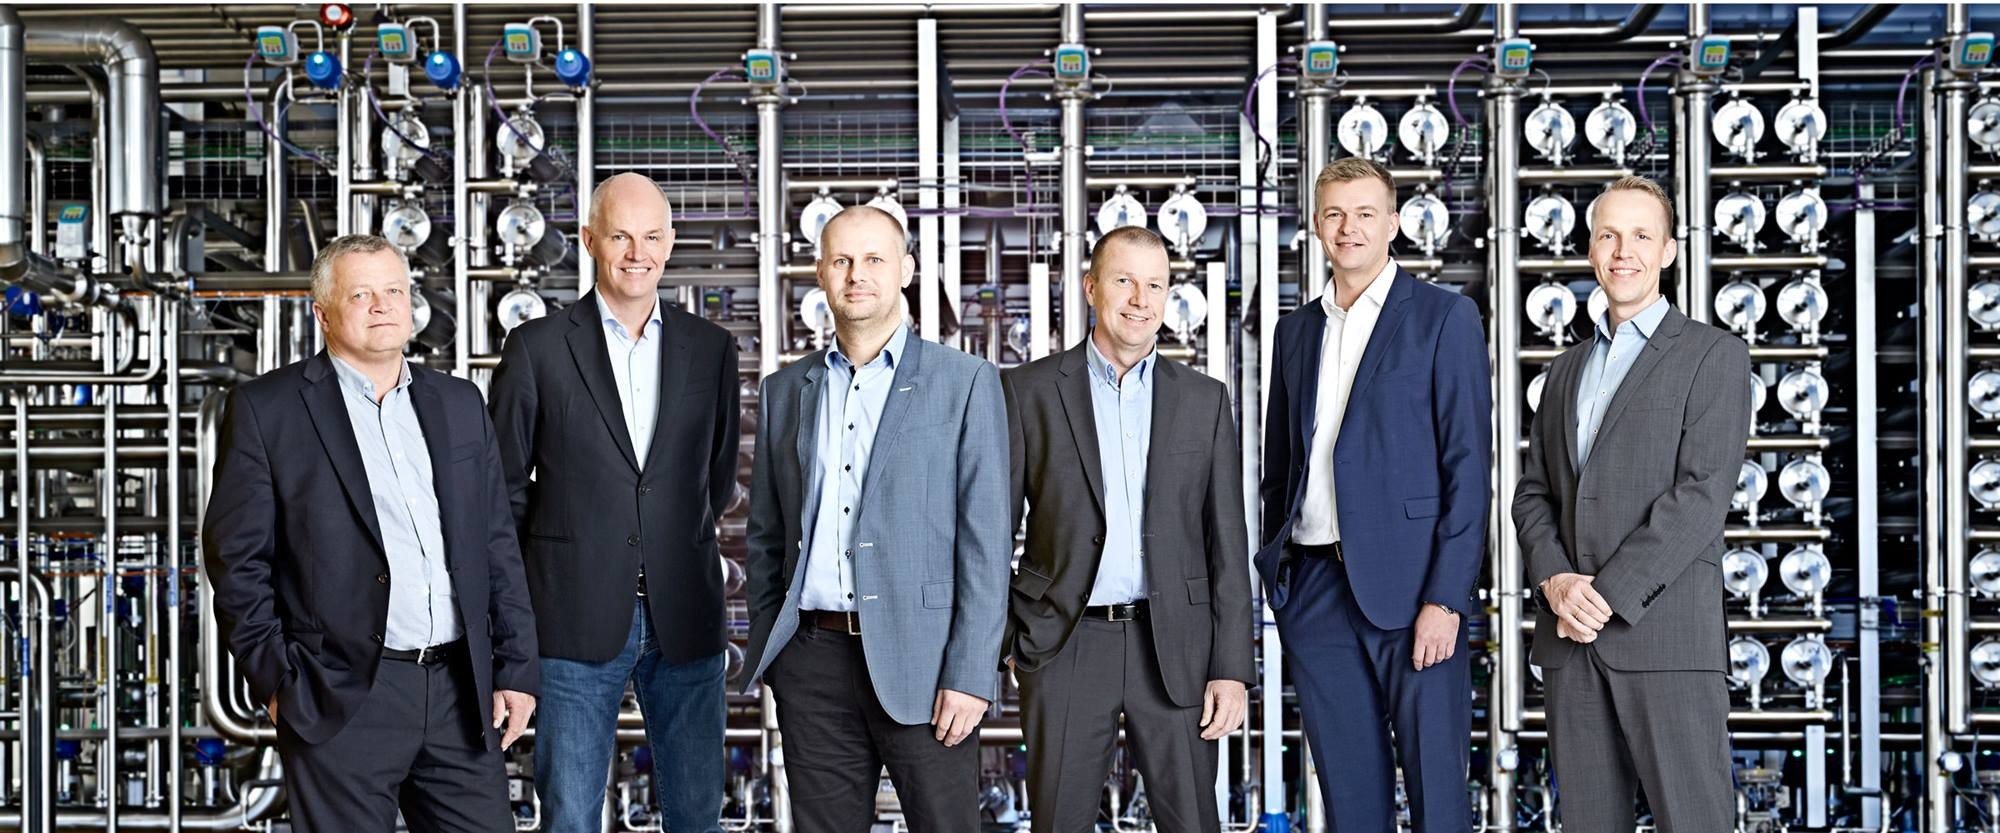 The management at Arla Foods Ingredients